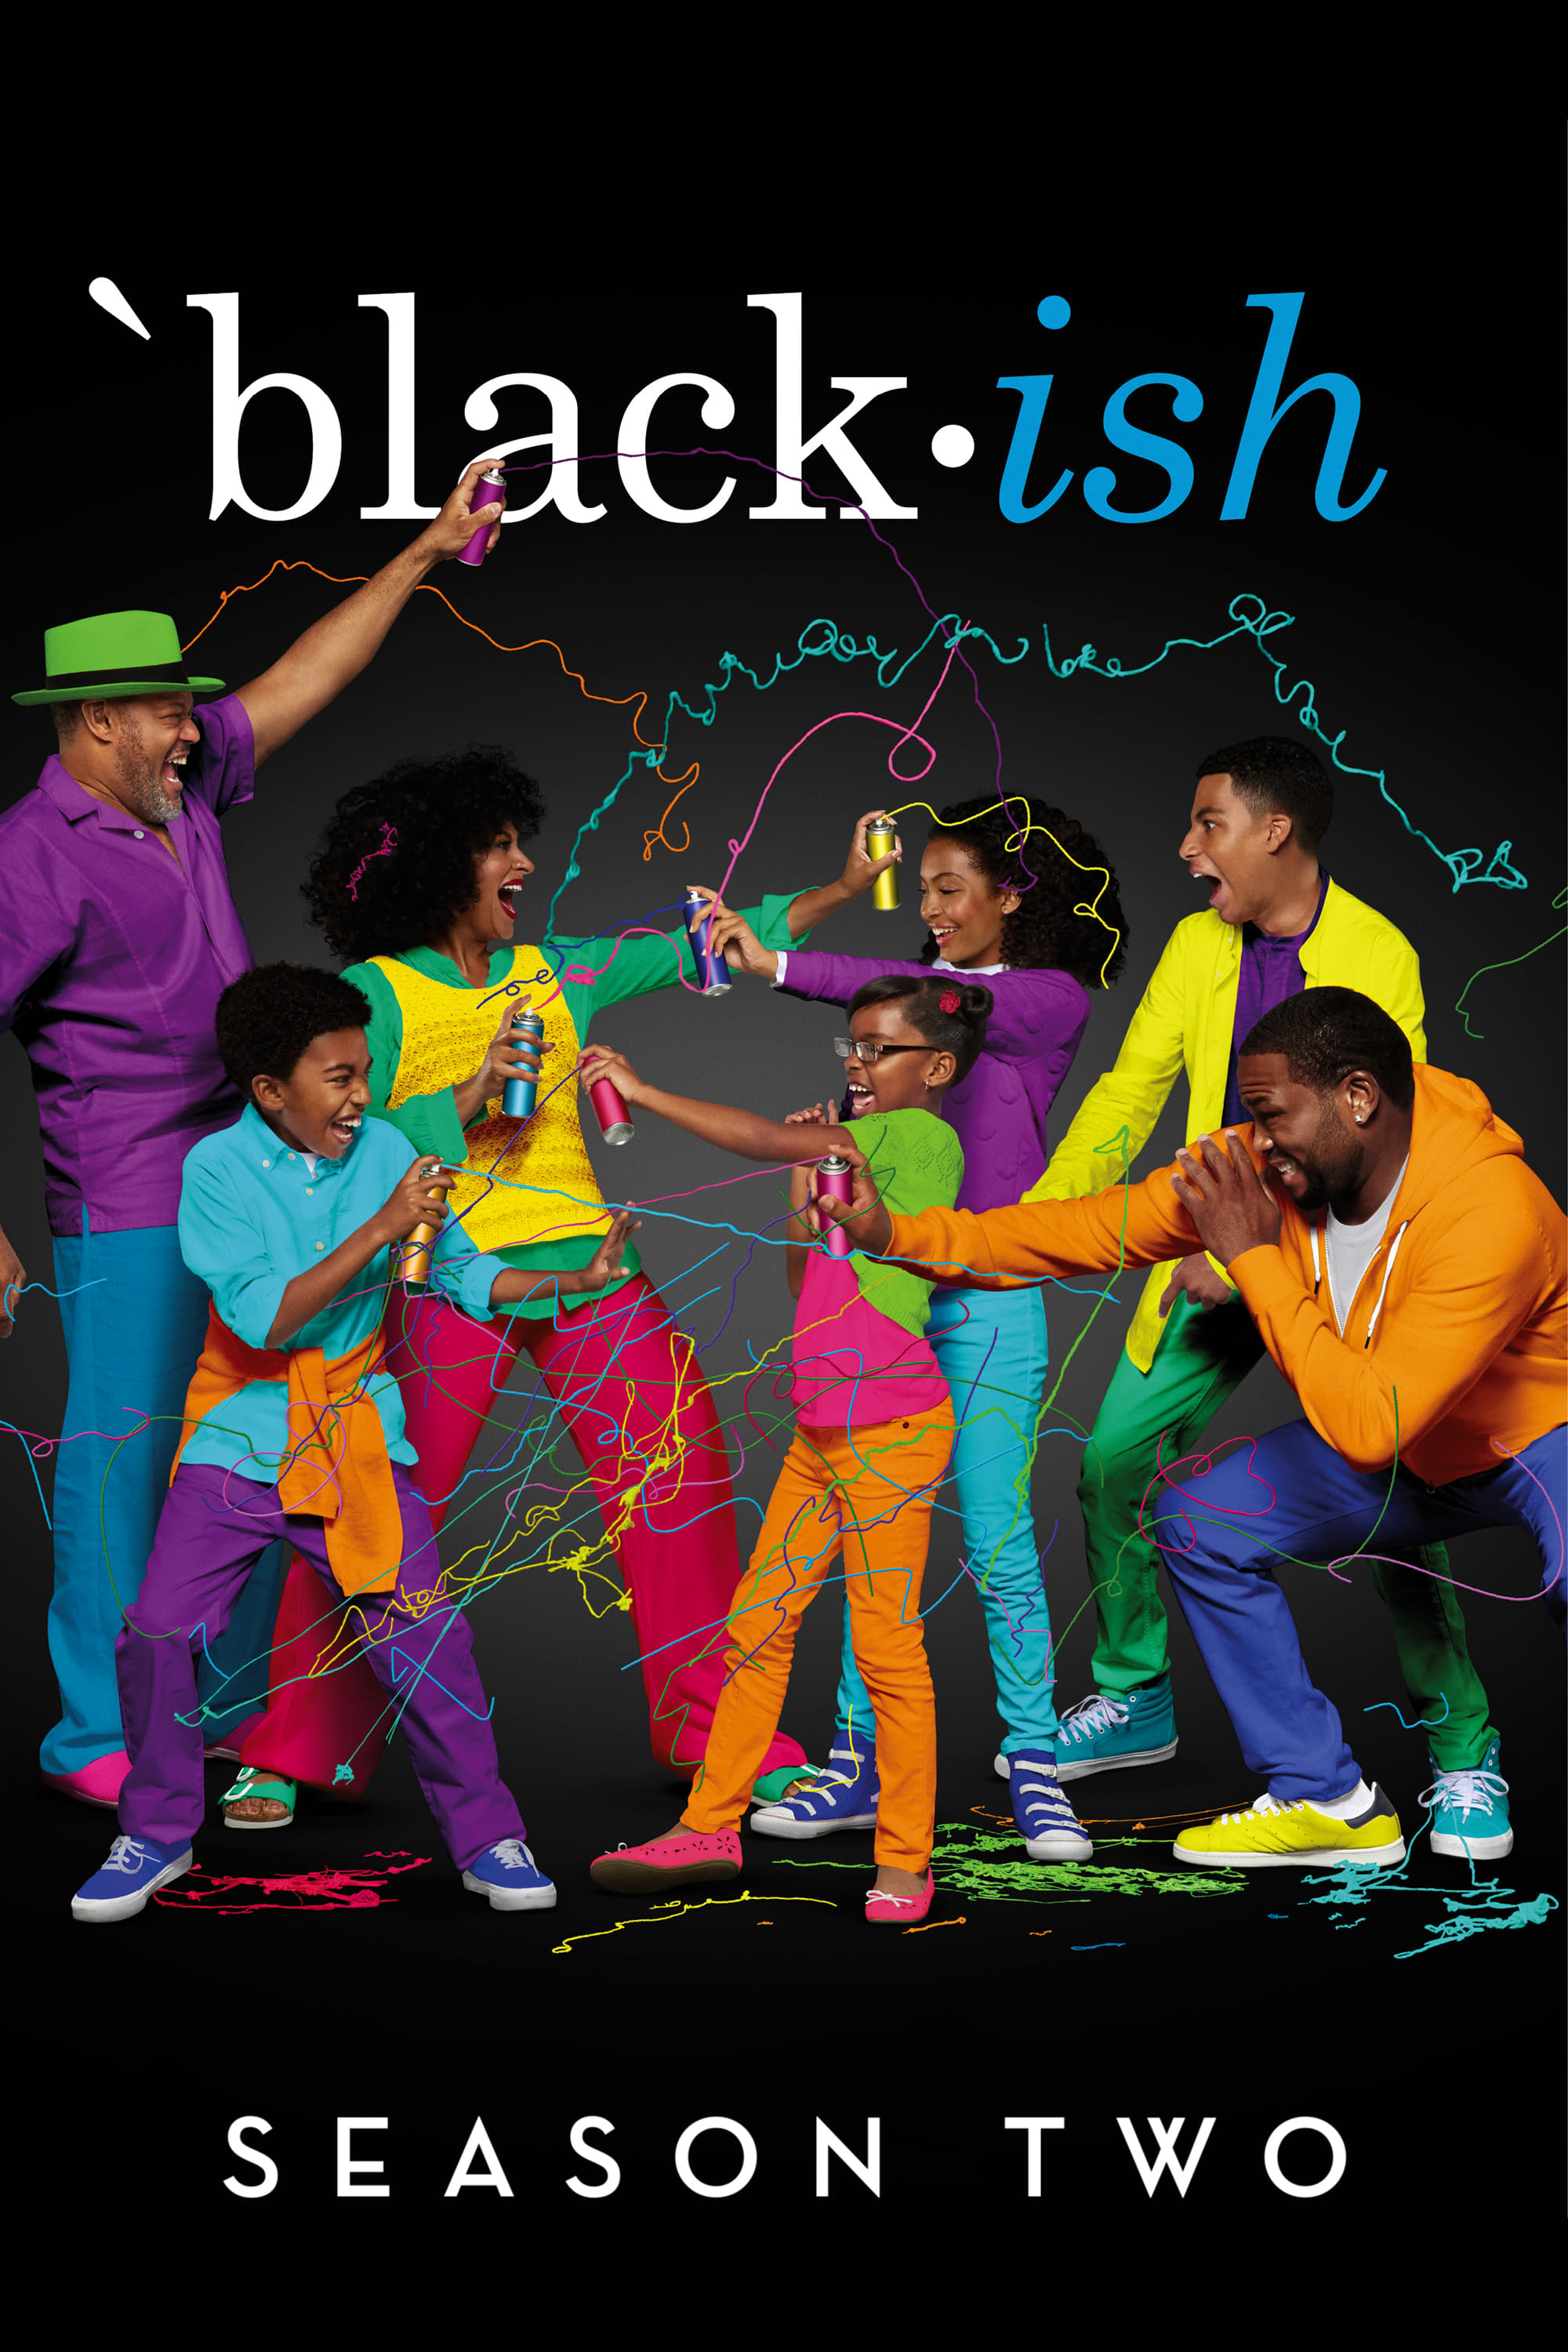 black-ish Season 2